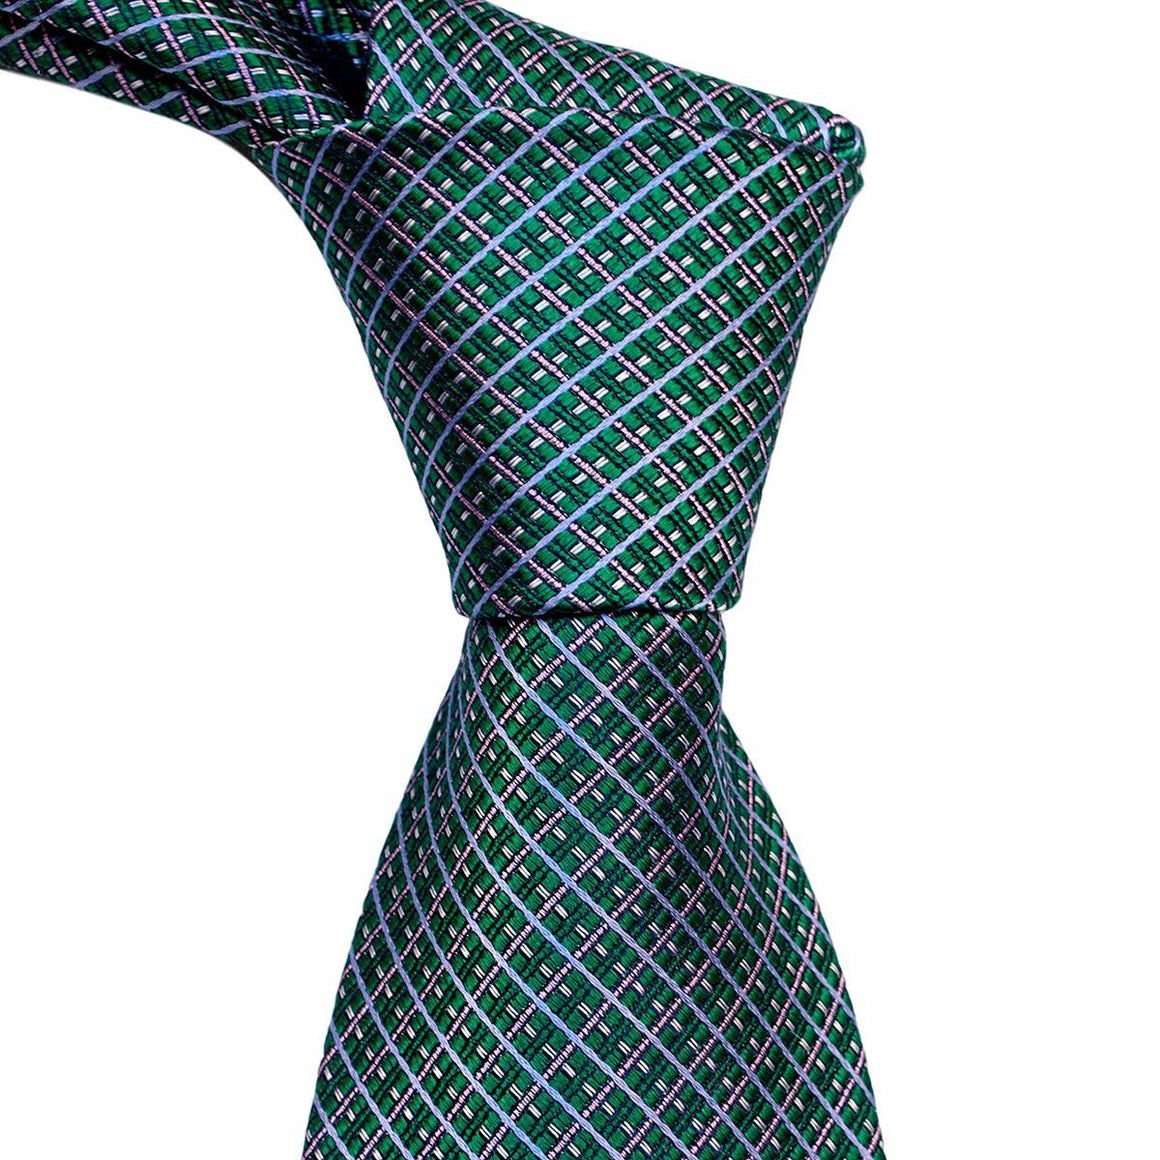 Nathan - TieThis Neckwear and Accessories and TieThis.com